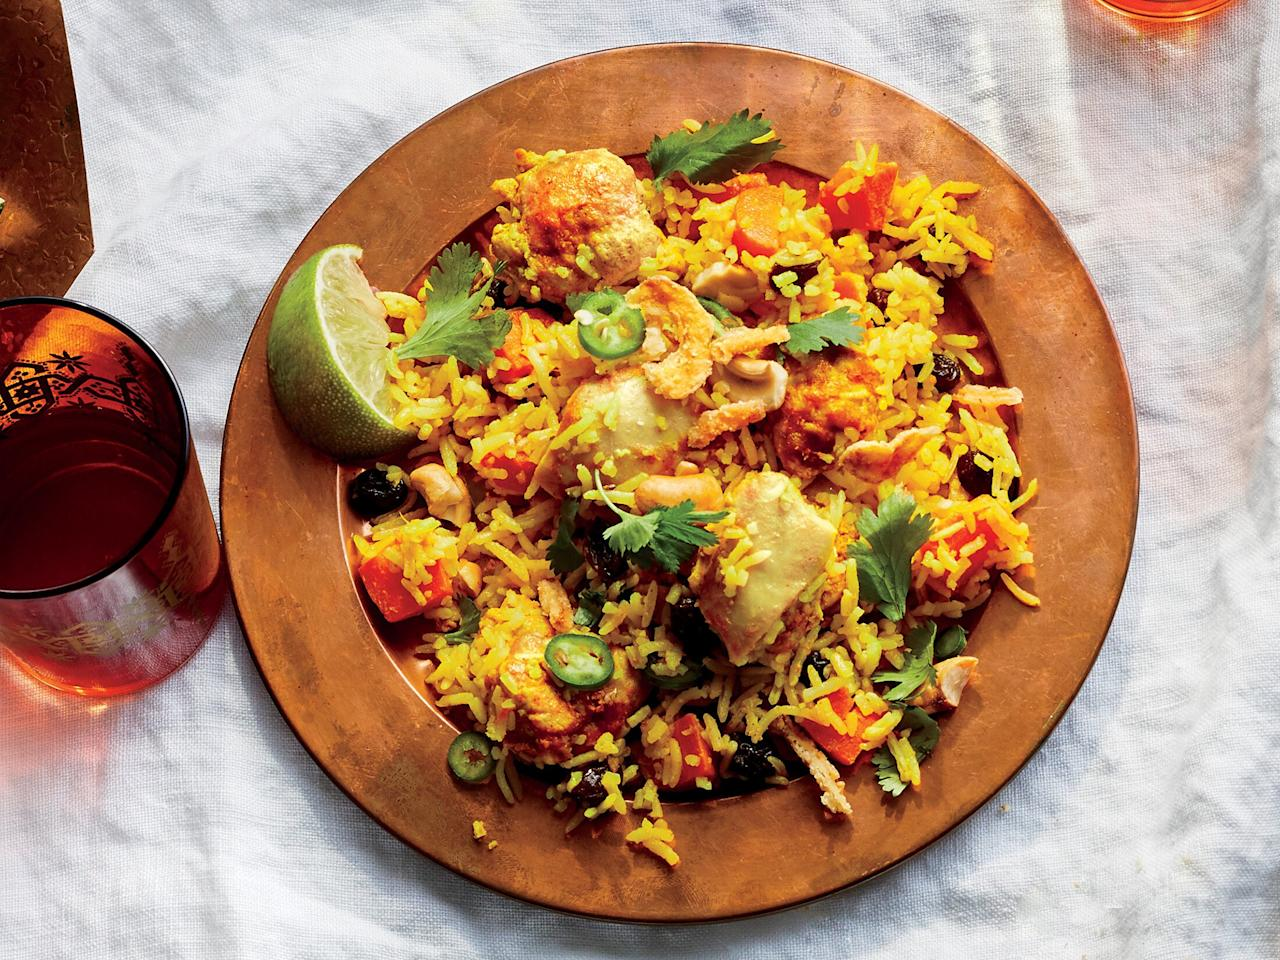 """<p>A standard in Indian cuisine, biryani gets plenty of flavor and fragrance from the spice mix, which typically includes turmeric, cardamom, ginger, and cumin. We use basmati rice here, which is a delicate white rice with an almost floral aroma. We particularly like Royal brand basmati, which has extraordinarily long grains.</p> <p><a href=""""https://www.myrecipes.com/recipe/chicken-biryani-1"""">Chicken Biryani Recipe</a></p>"""